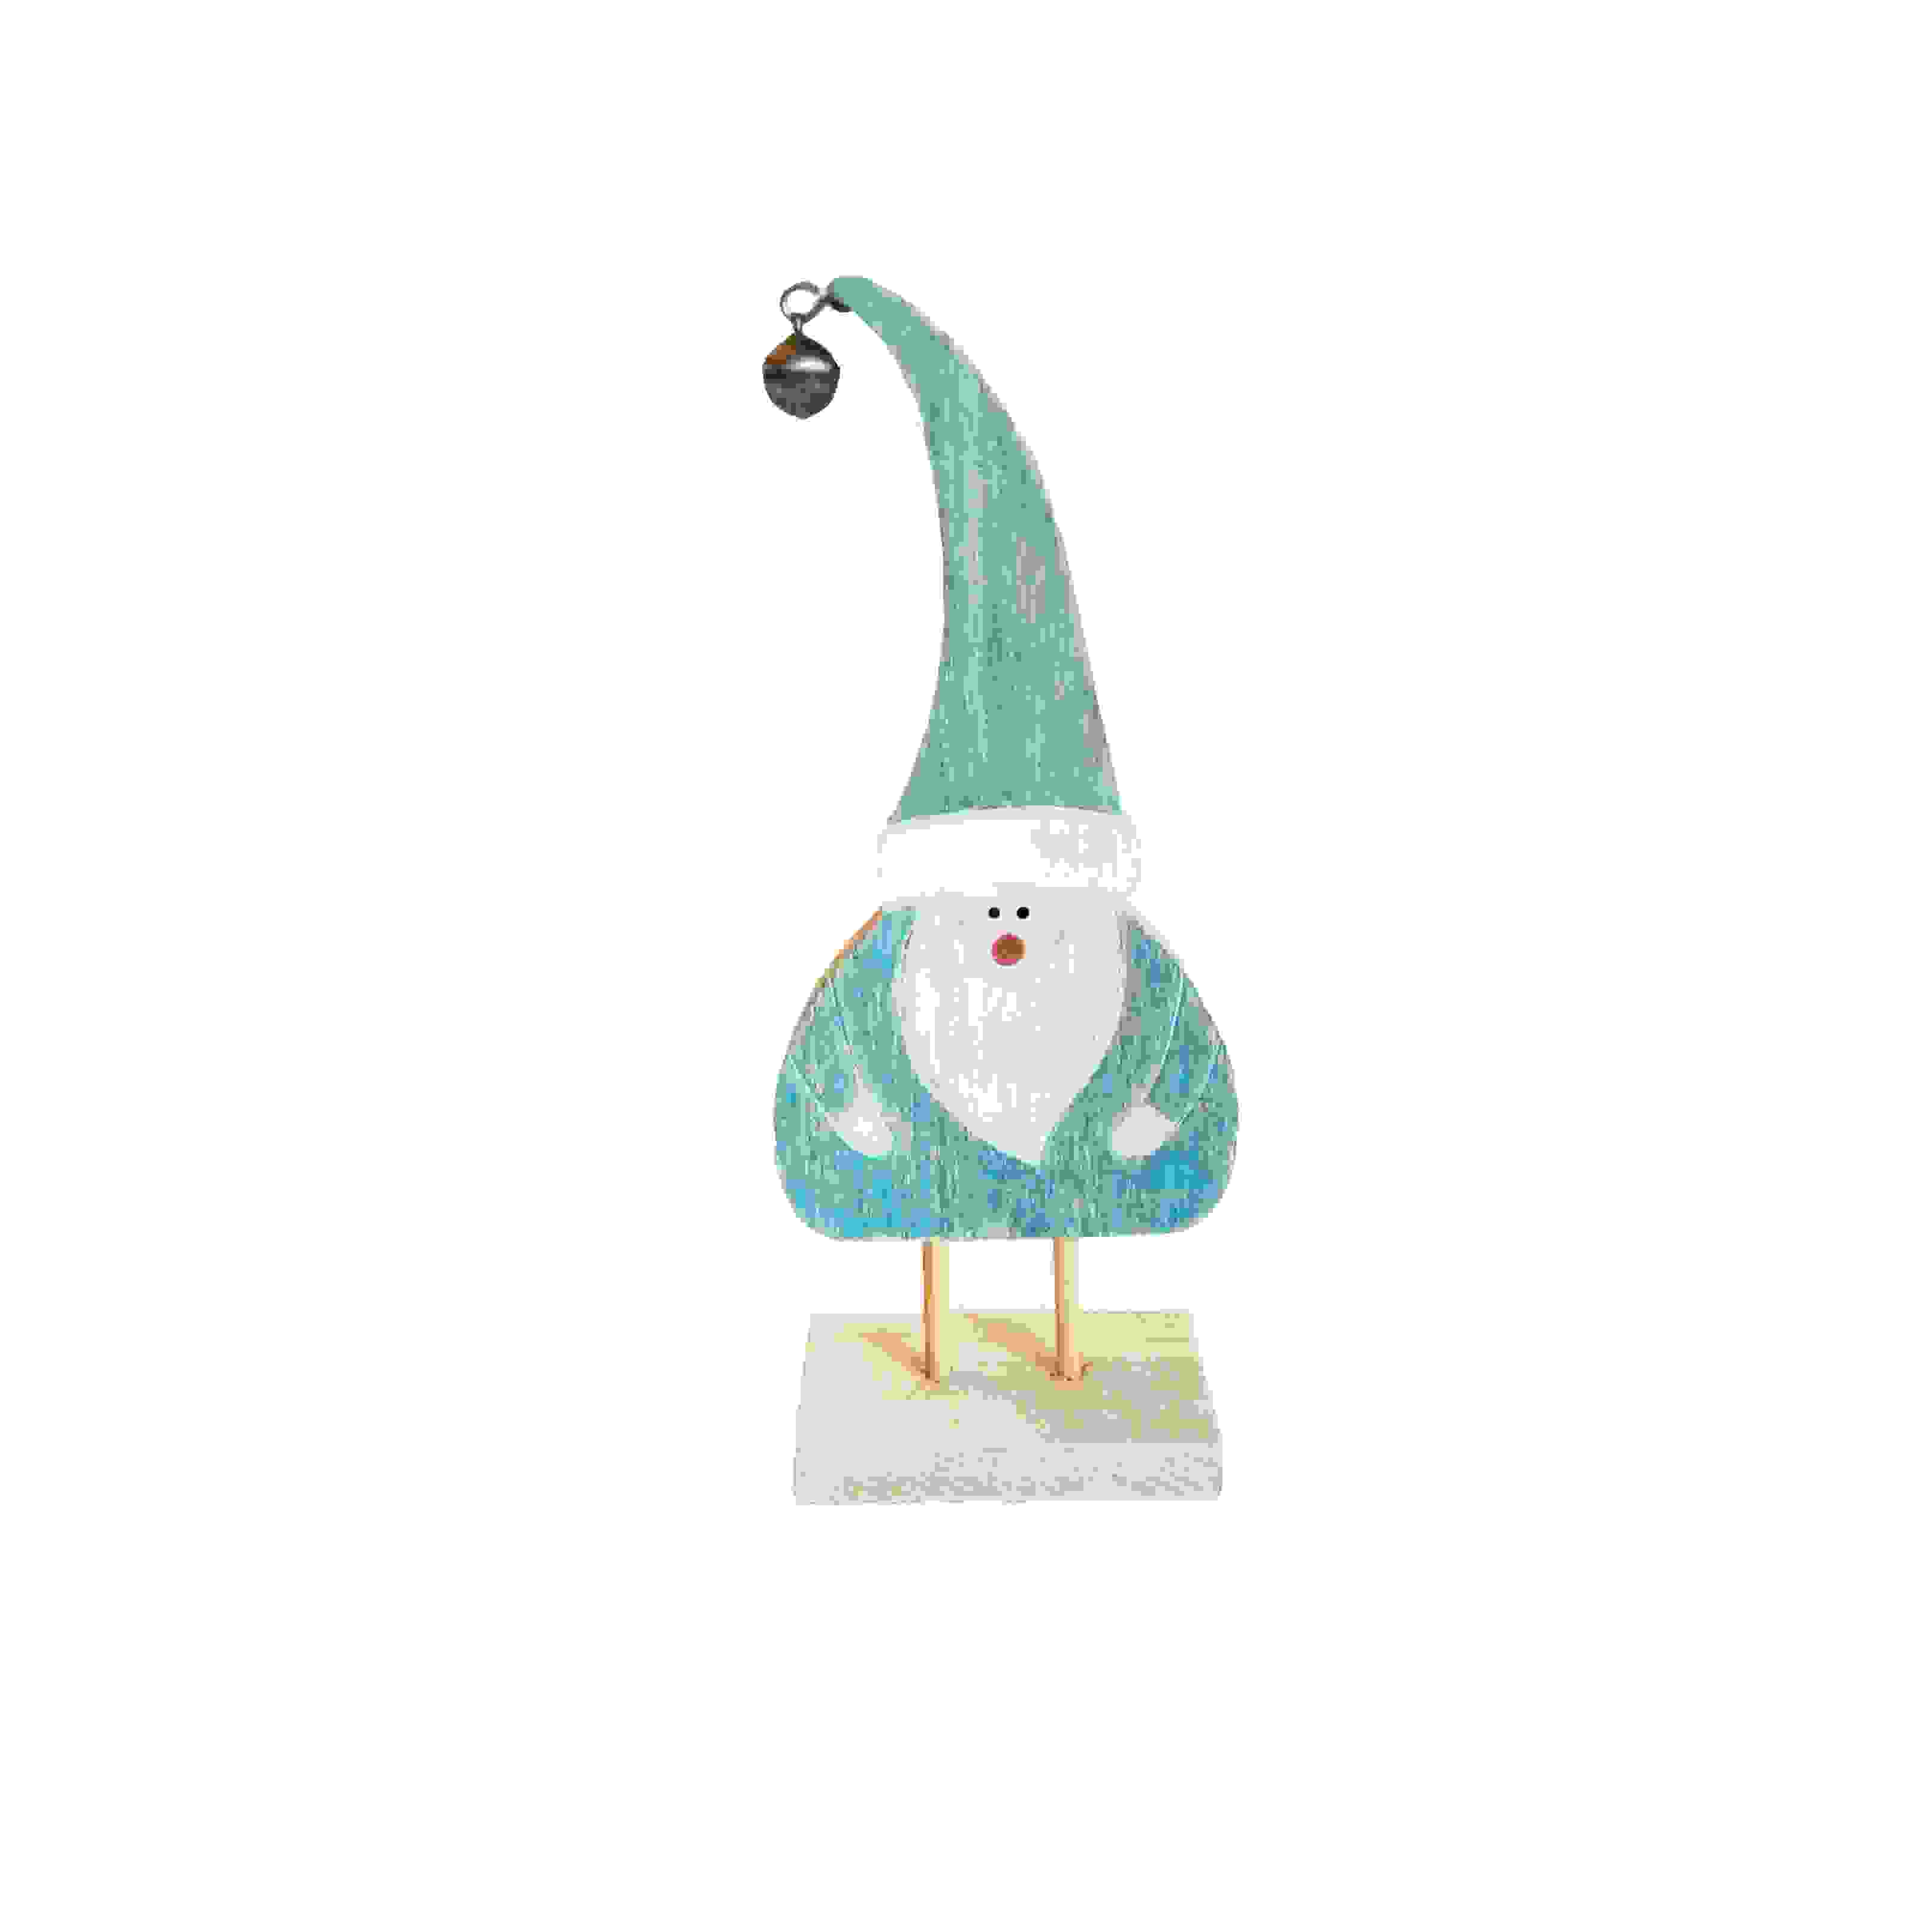 STANDING TEAL WOOD SANTA CLAUS 18cm